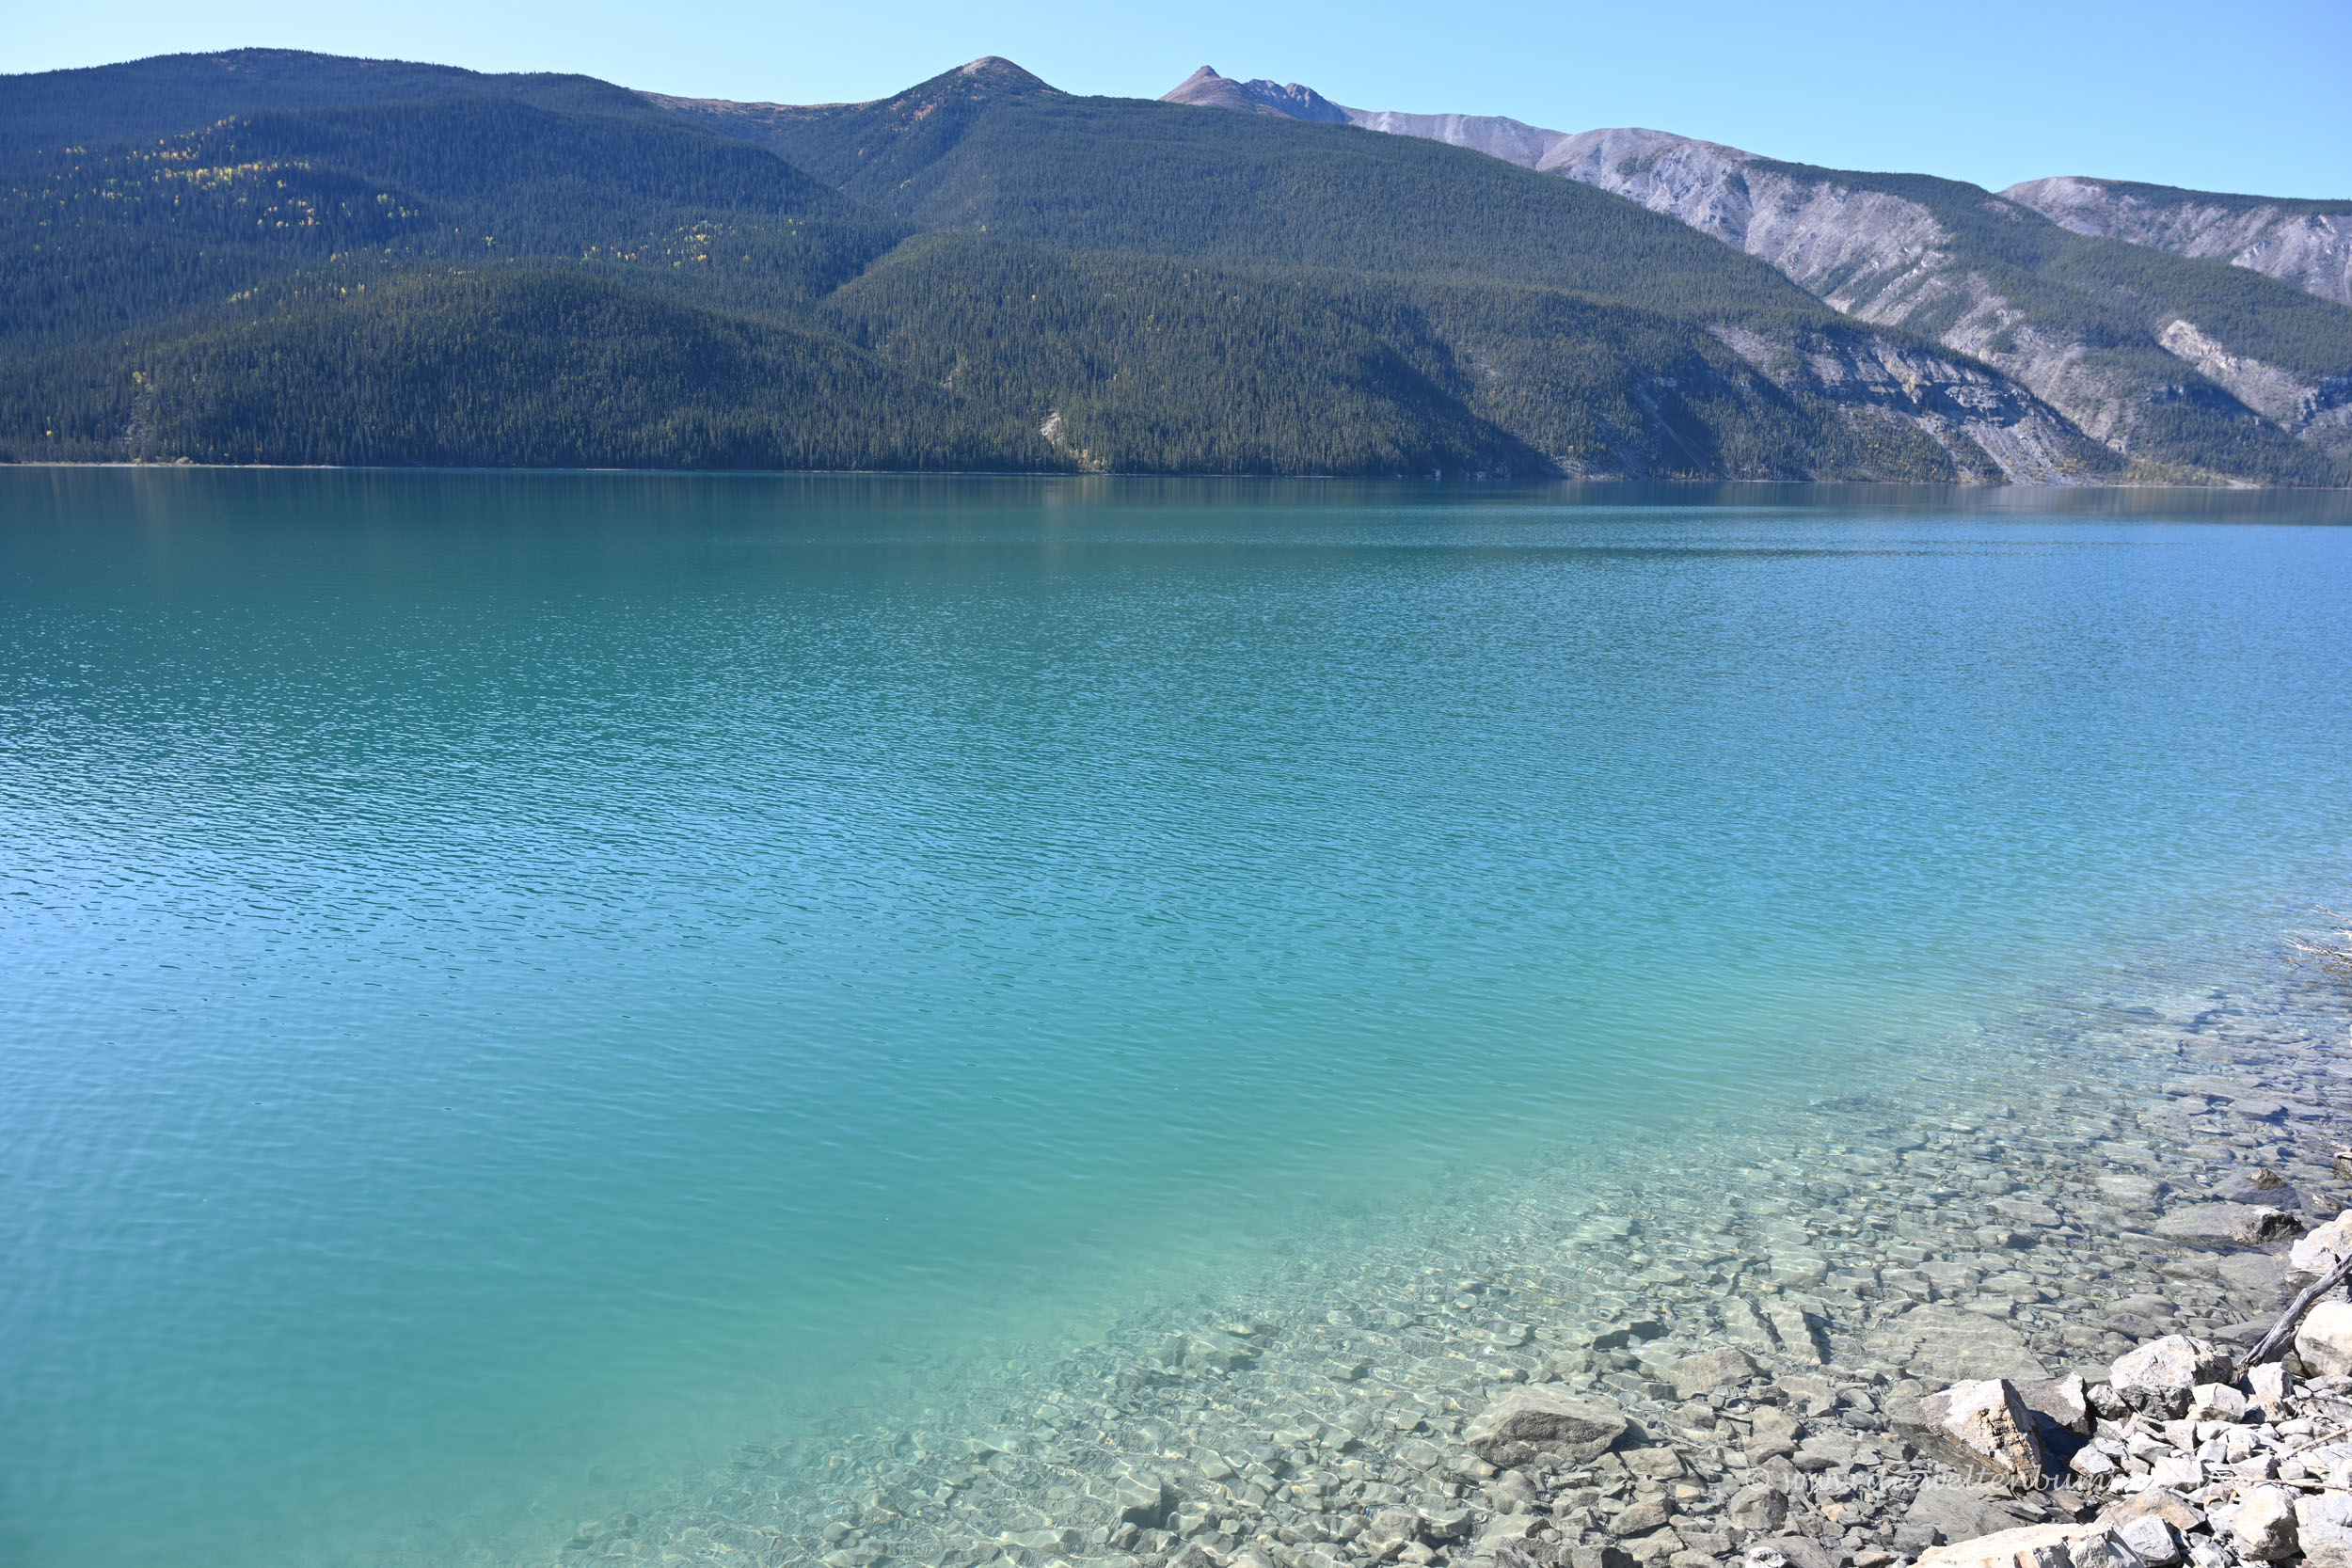 Toller See